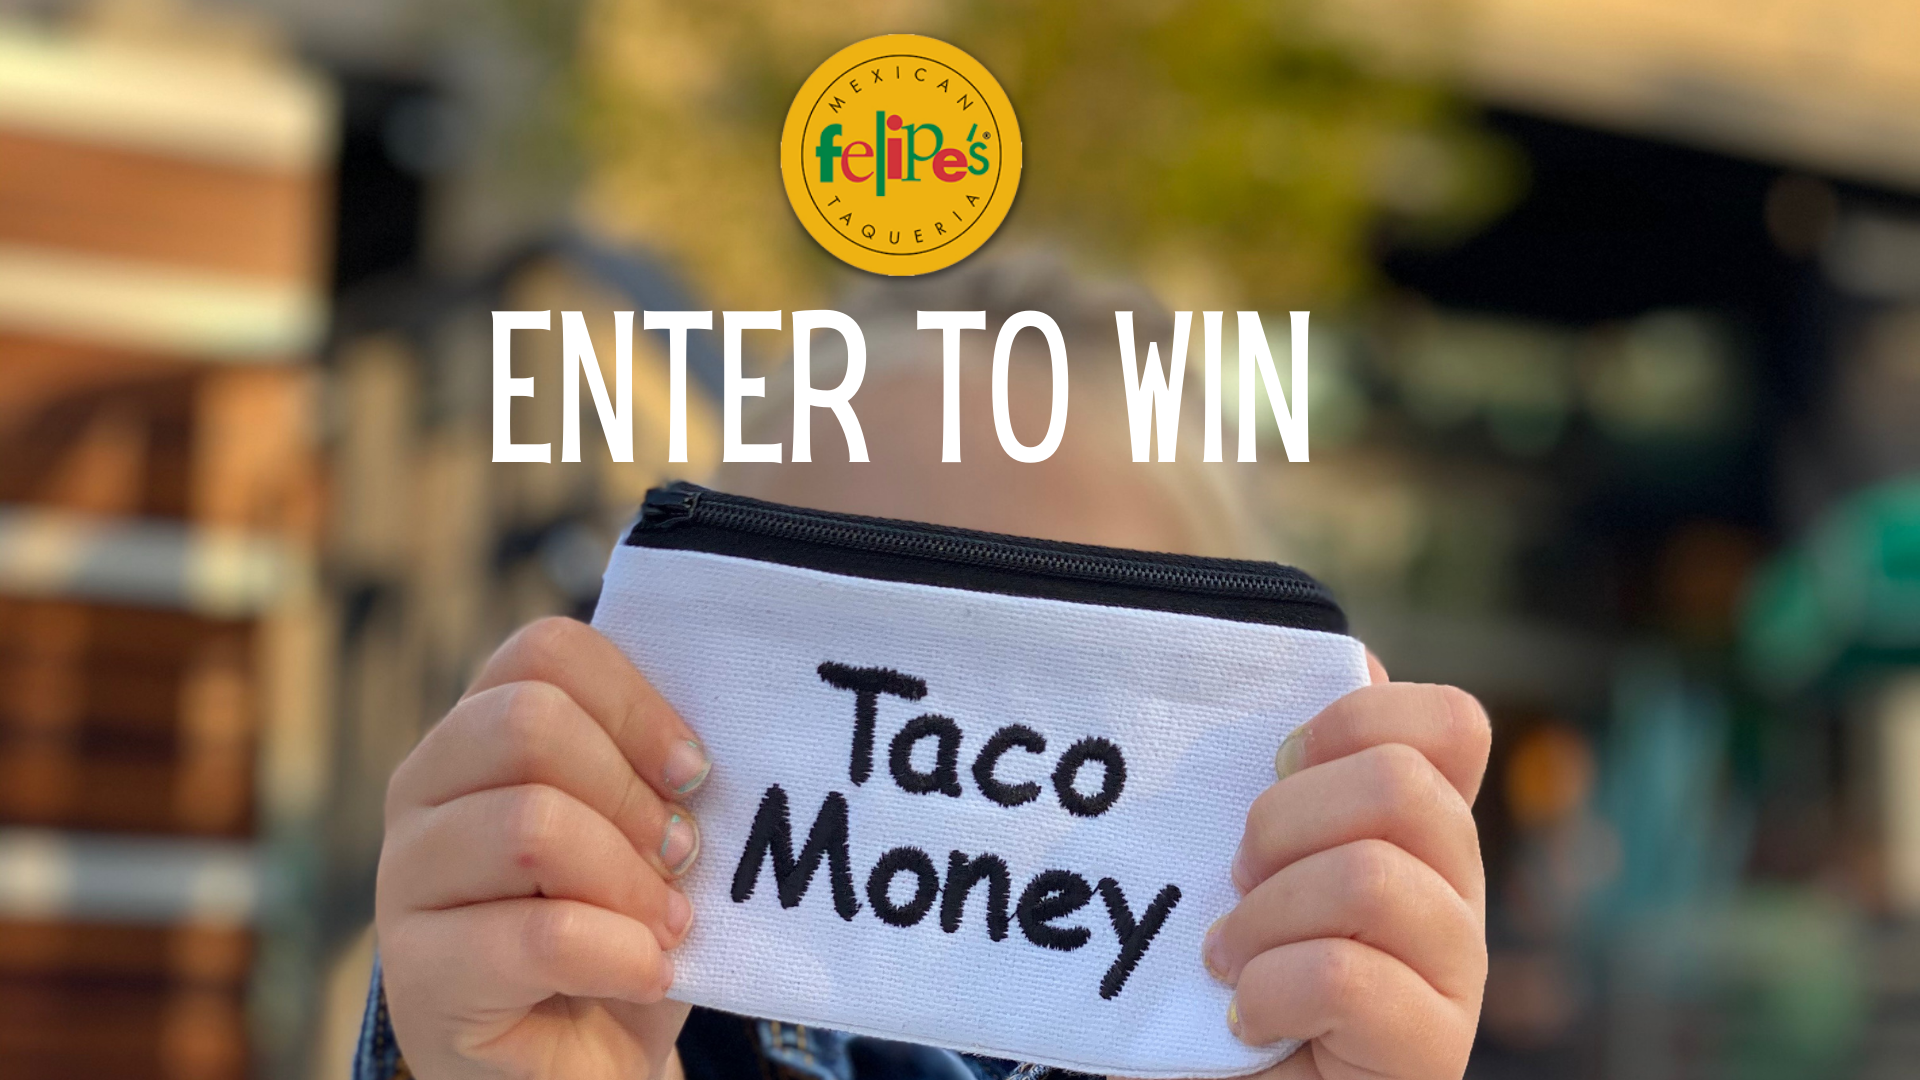 Enter to Win TACO MONEY! #Tacos4Teachers